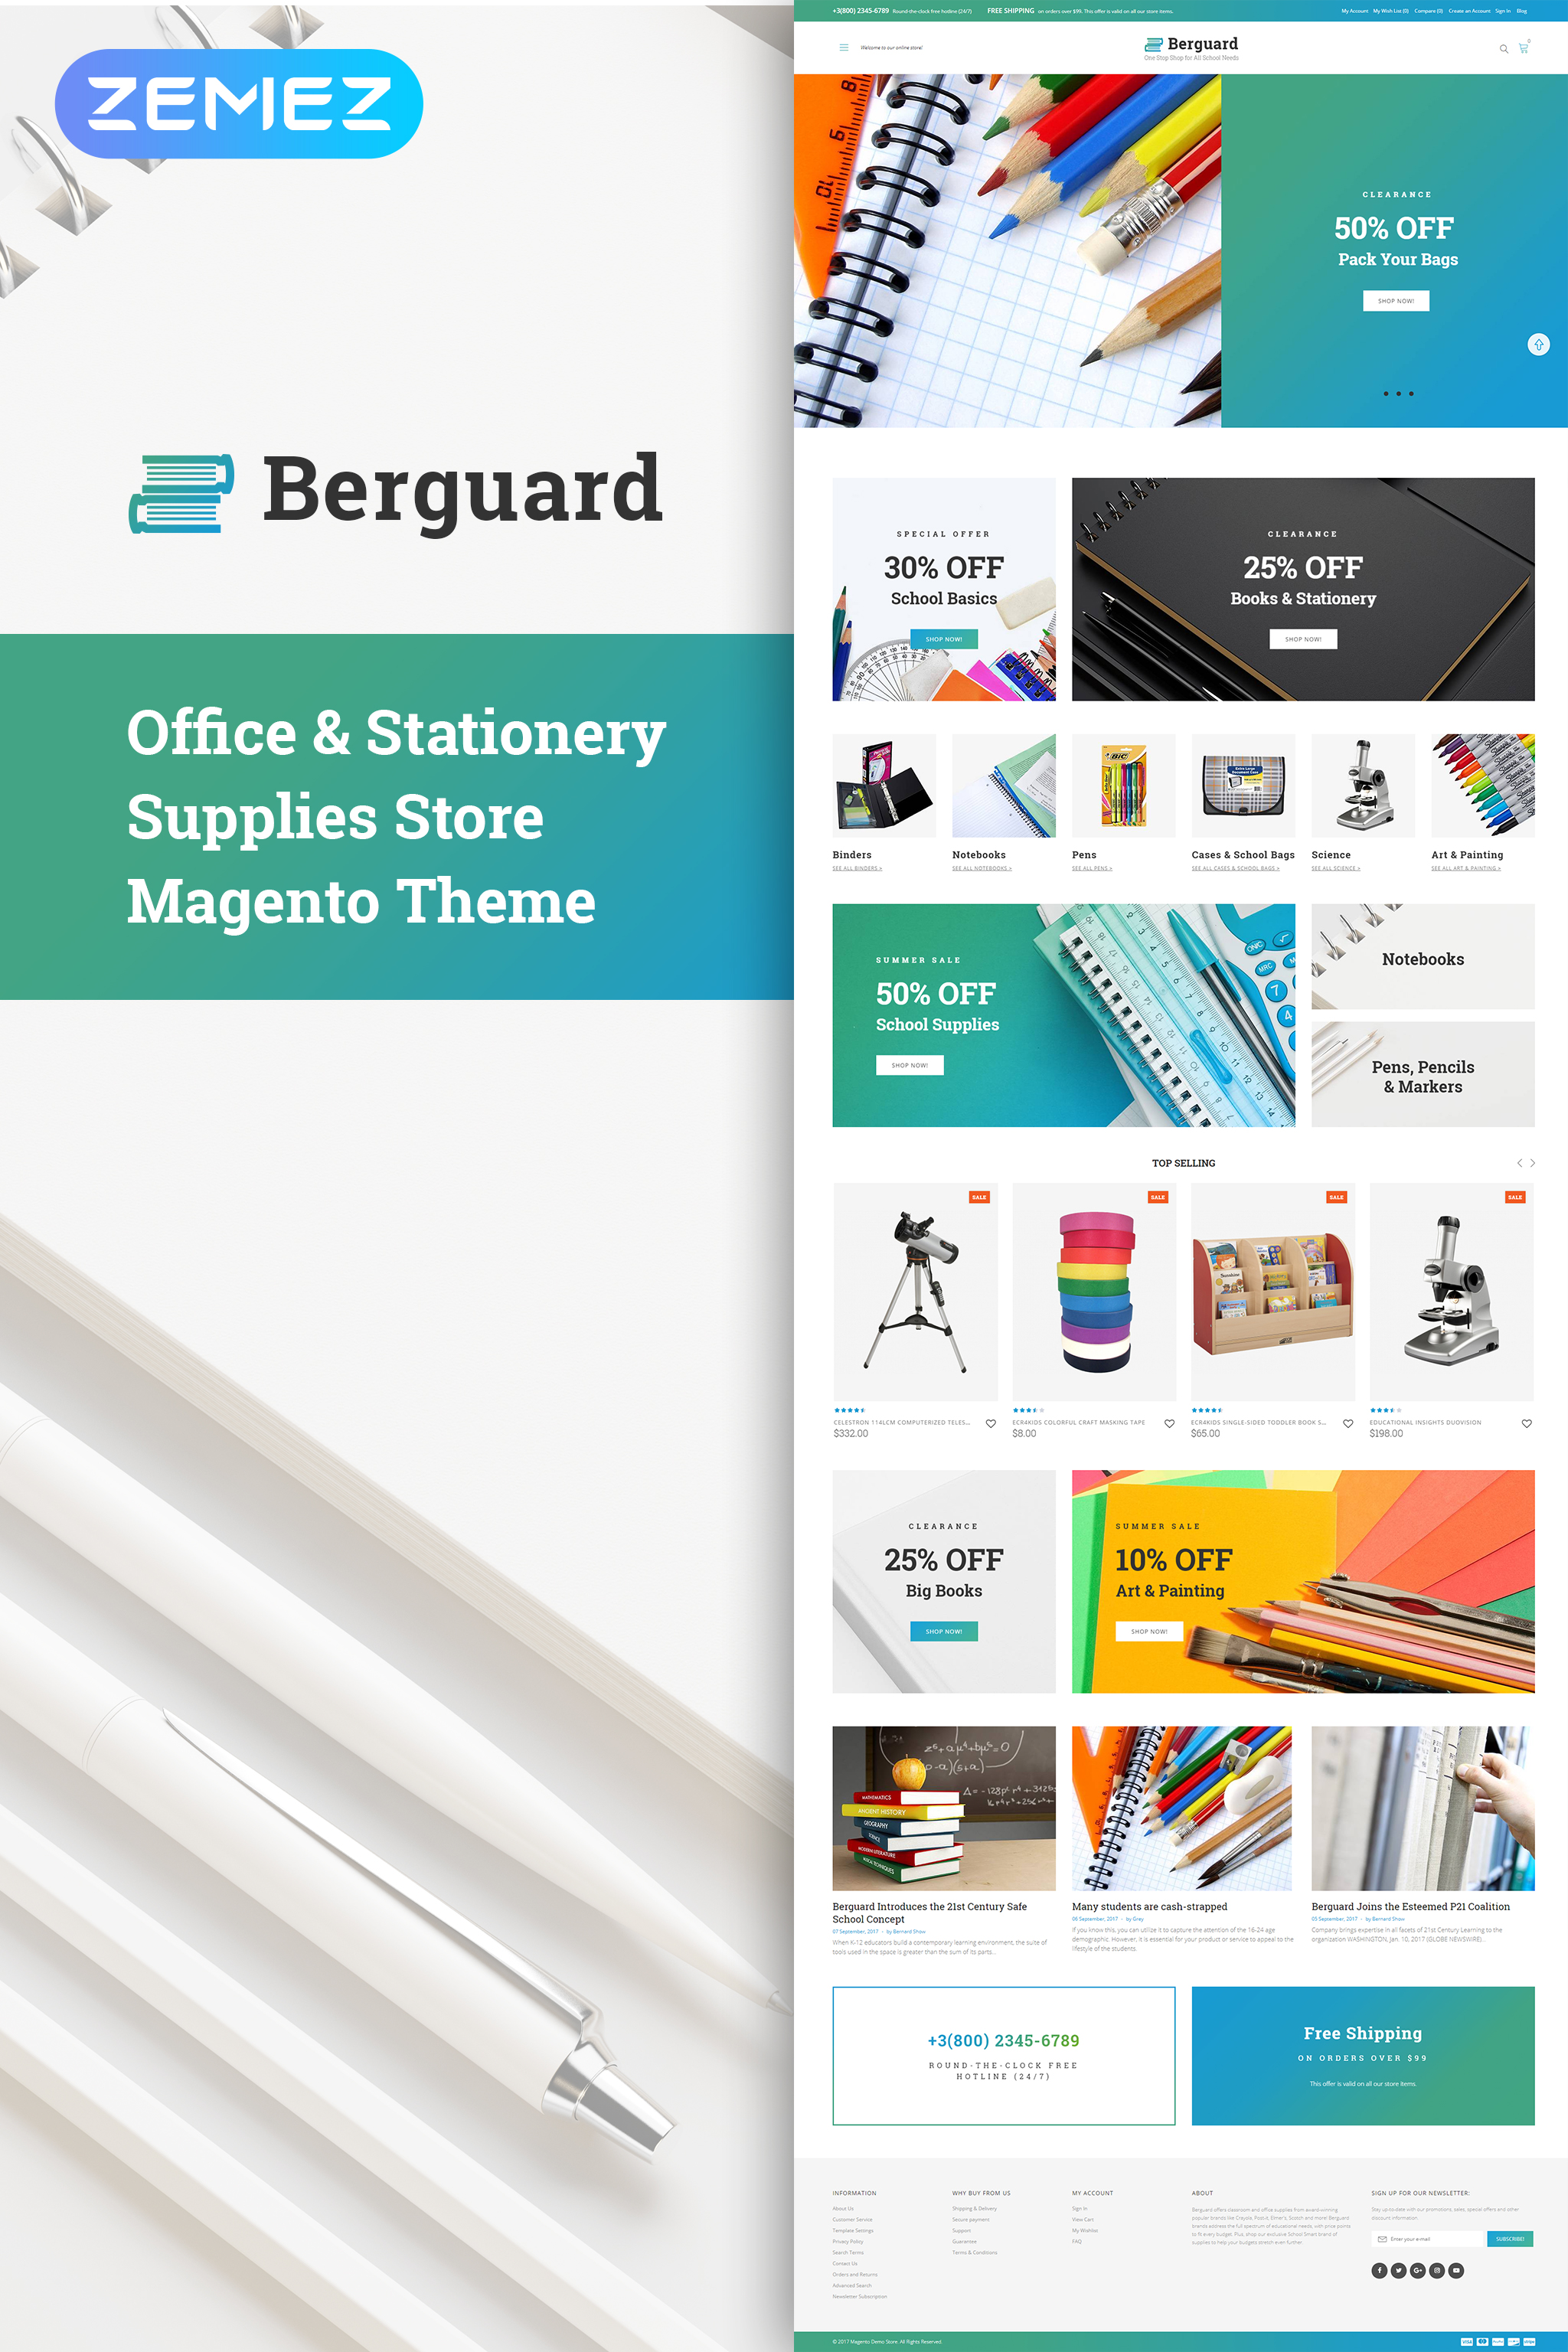 Szablon Magento Berguard - Office & Stationery Supplies #64137